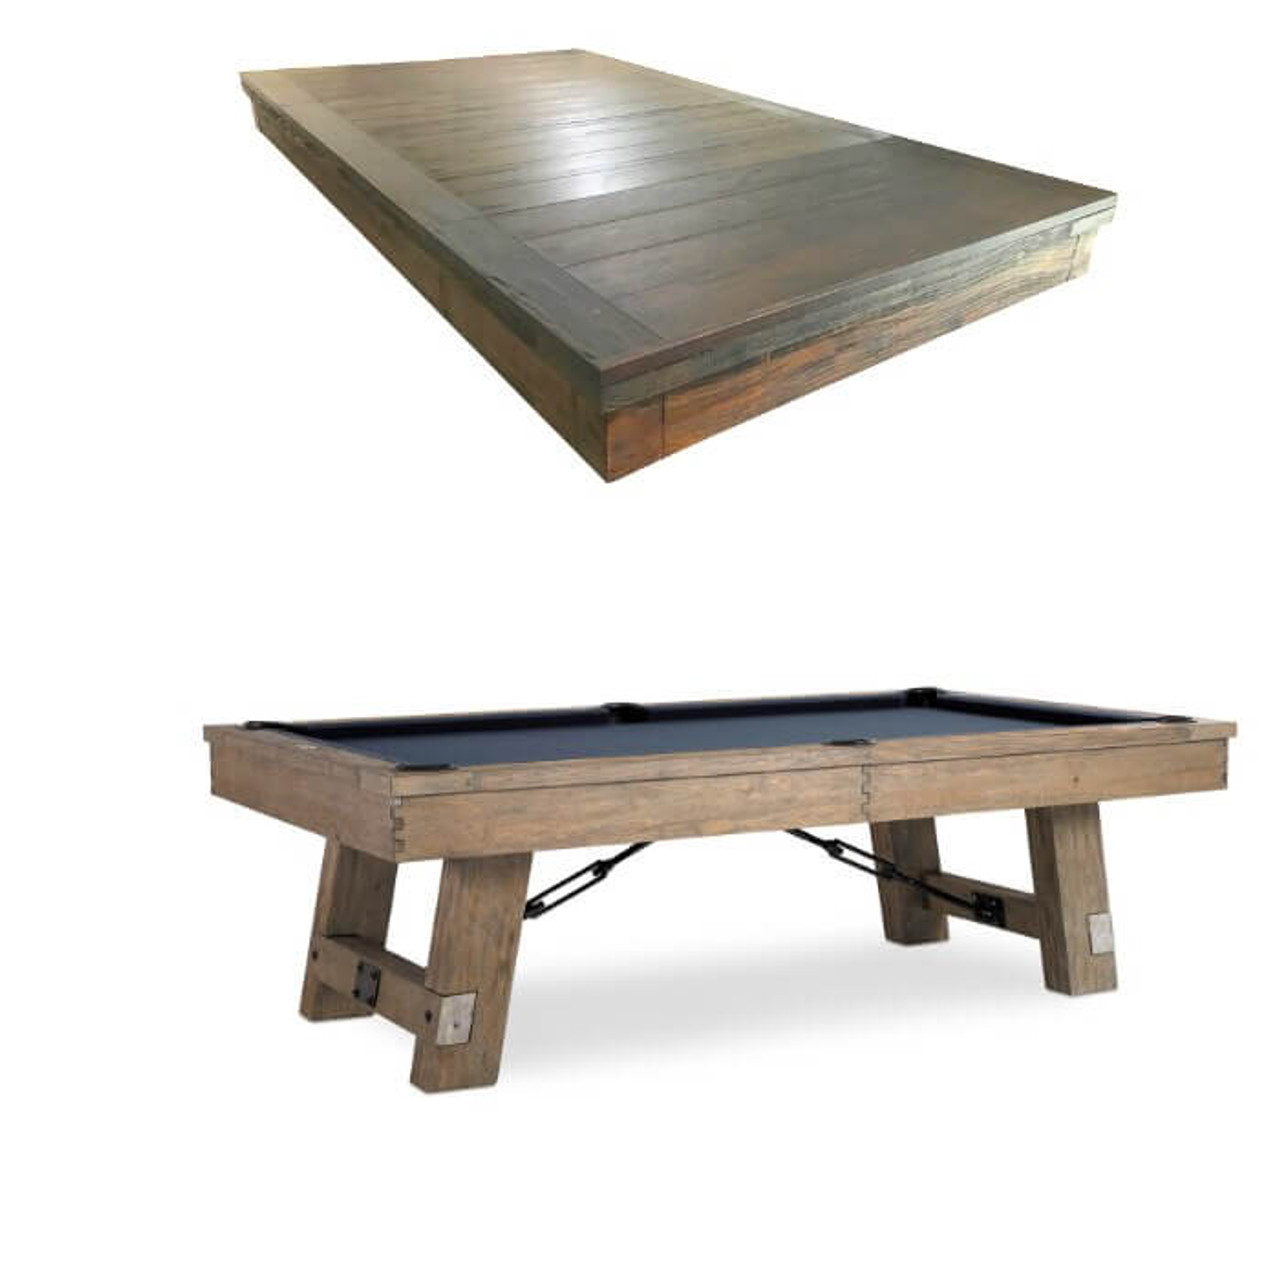 Admirable Isaac Pool Table W Dining Top Option Home Interior And Landscaping Sapresignezvosmurscom